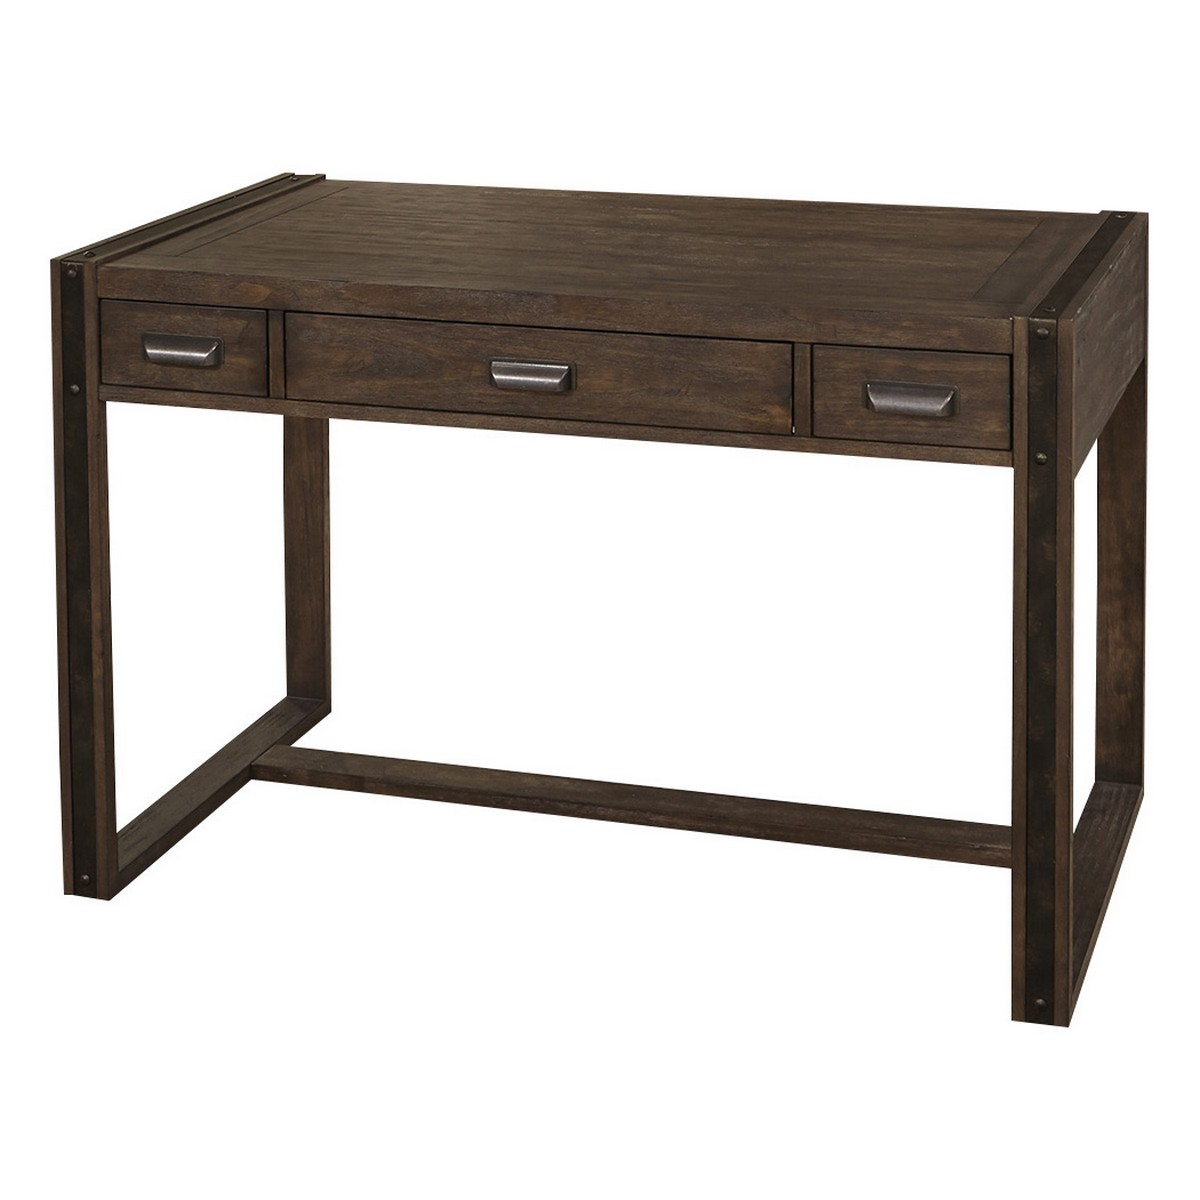 Parker House Brooklyn 48-inch Writing Desk - Antique Burnished Pine